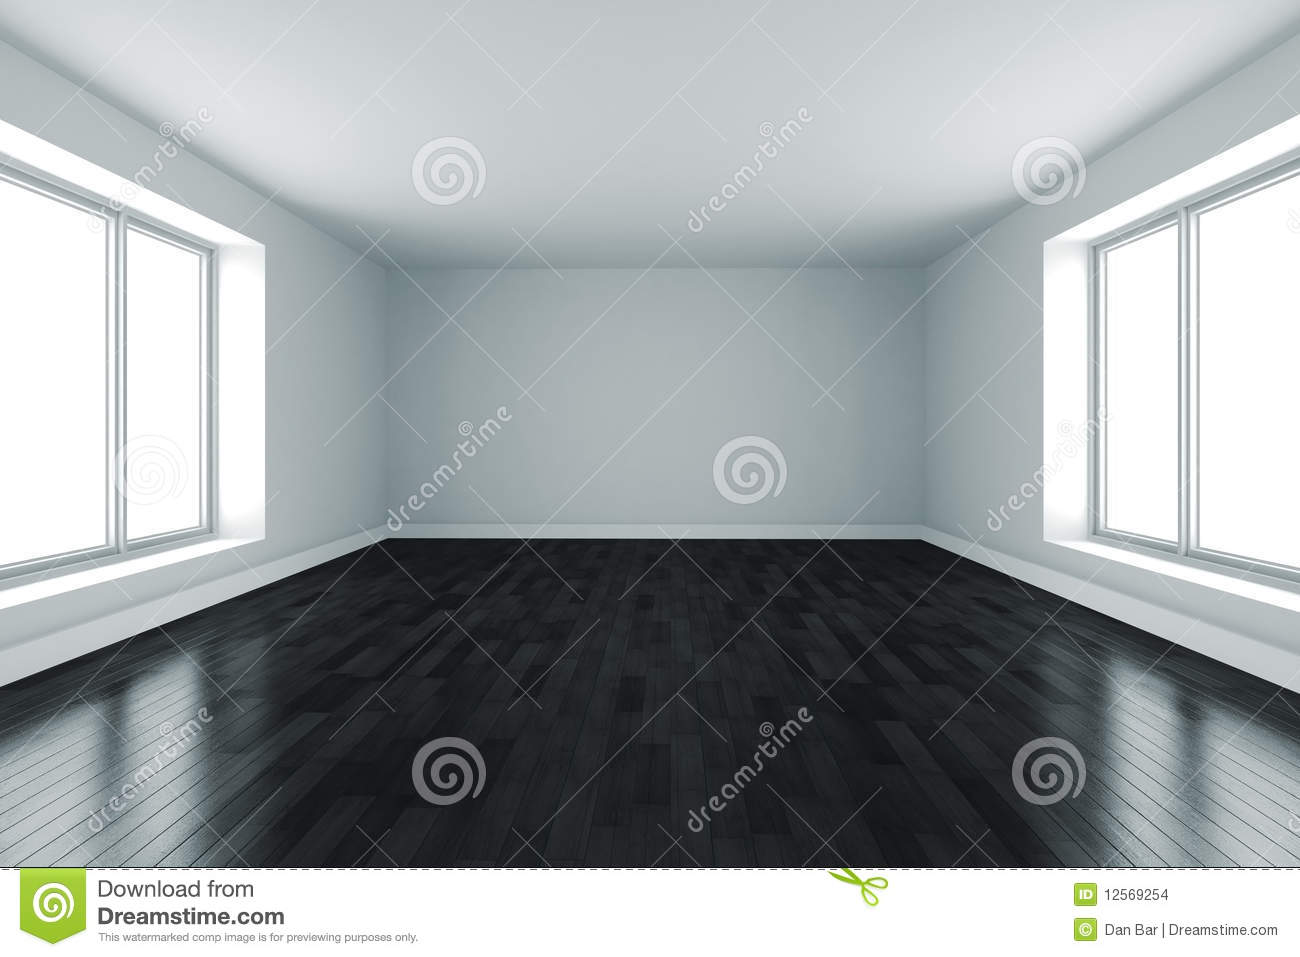 3d Room With White Walls And Black Floor Stock Images